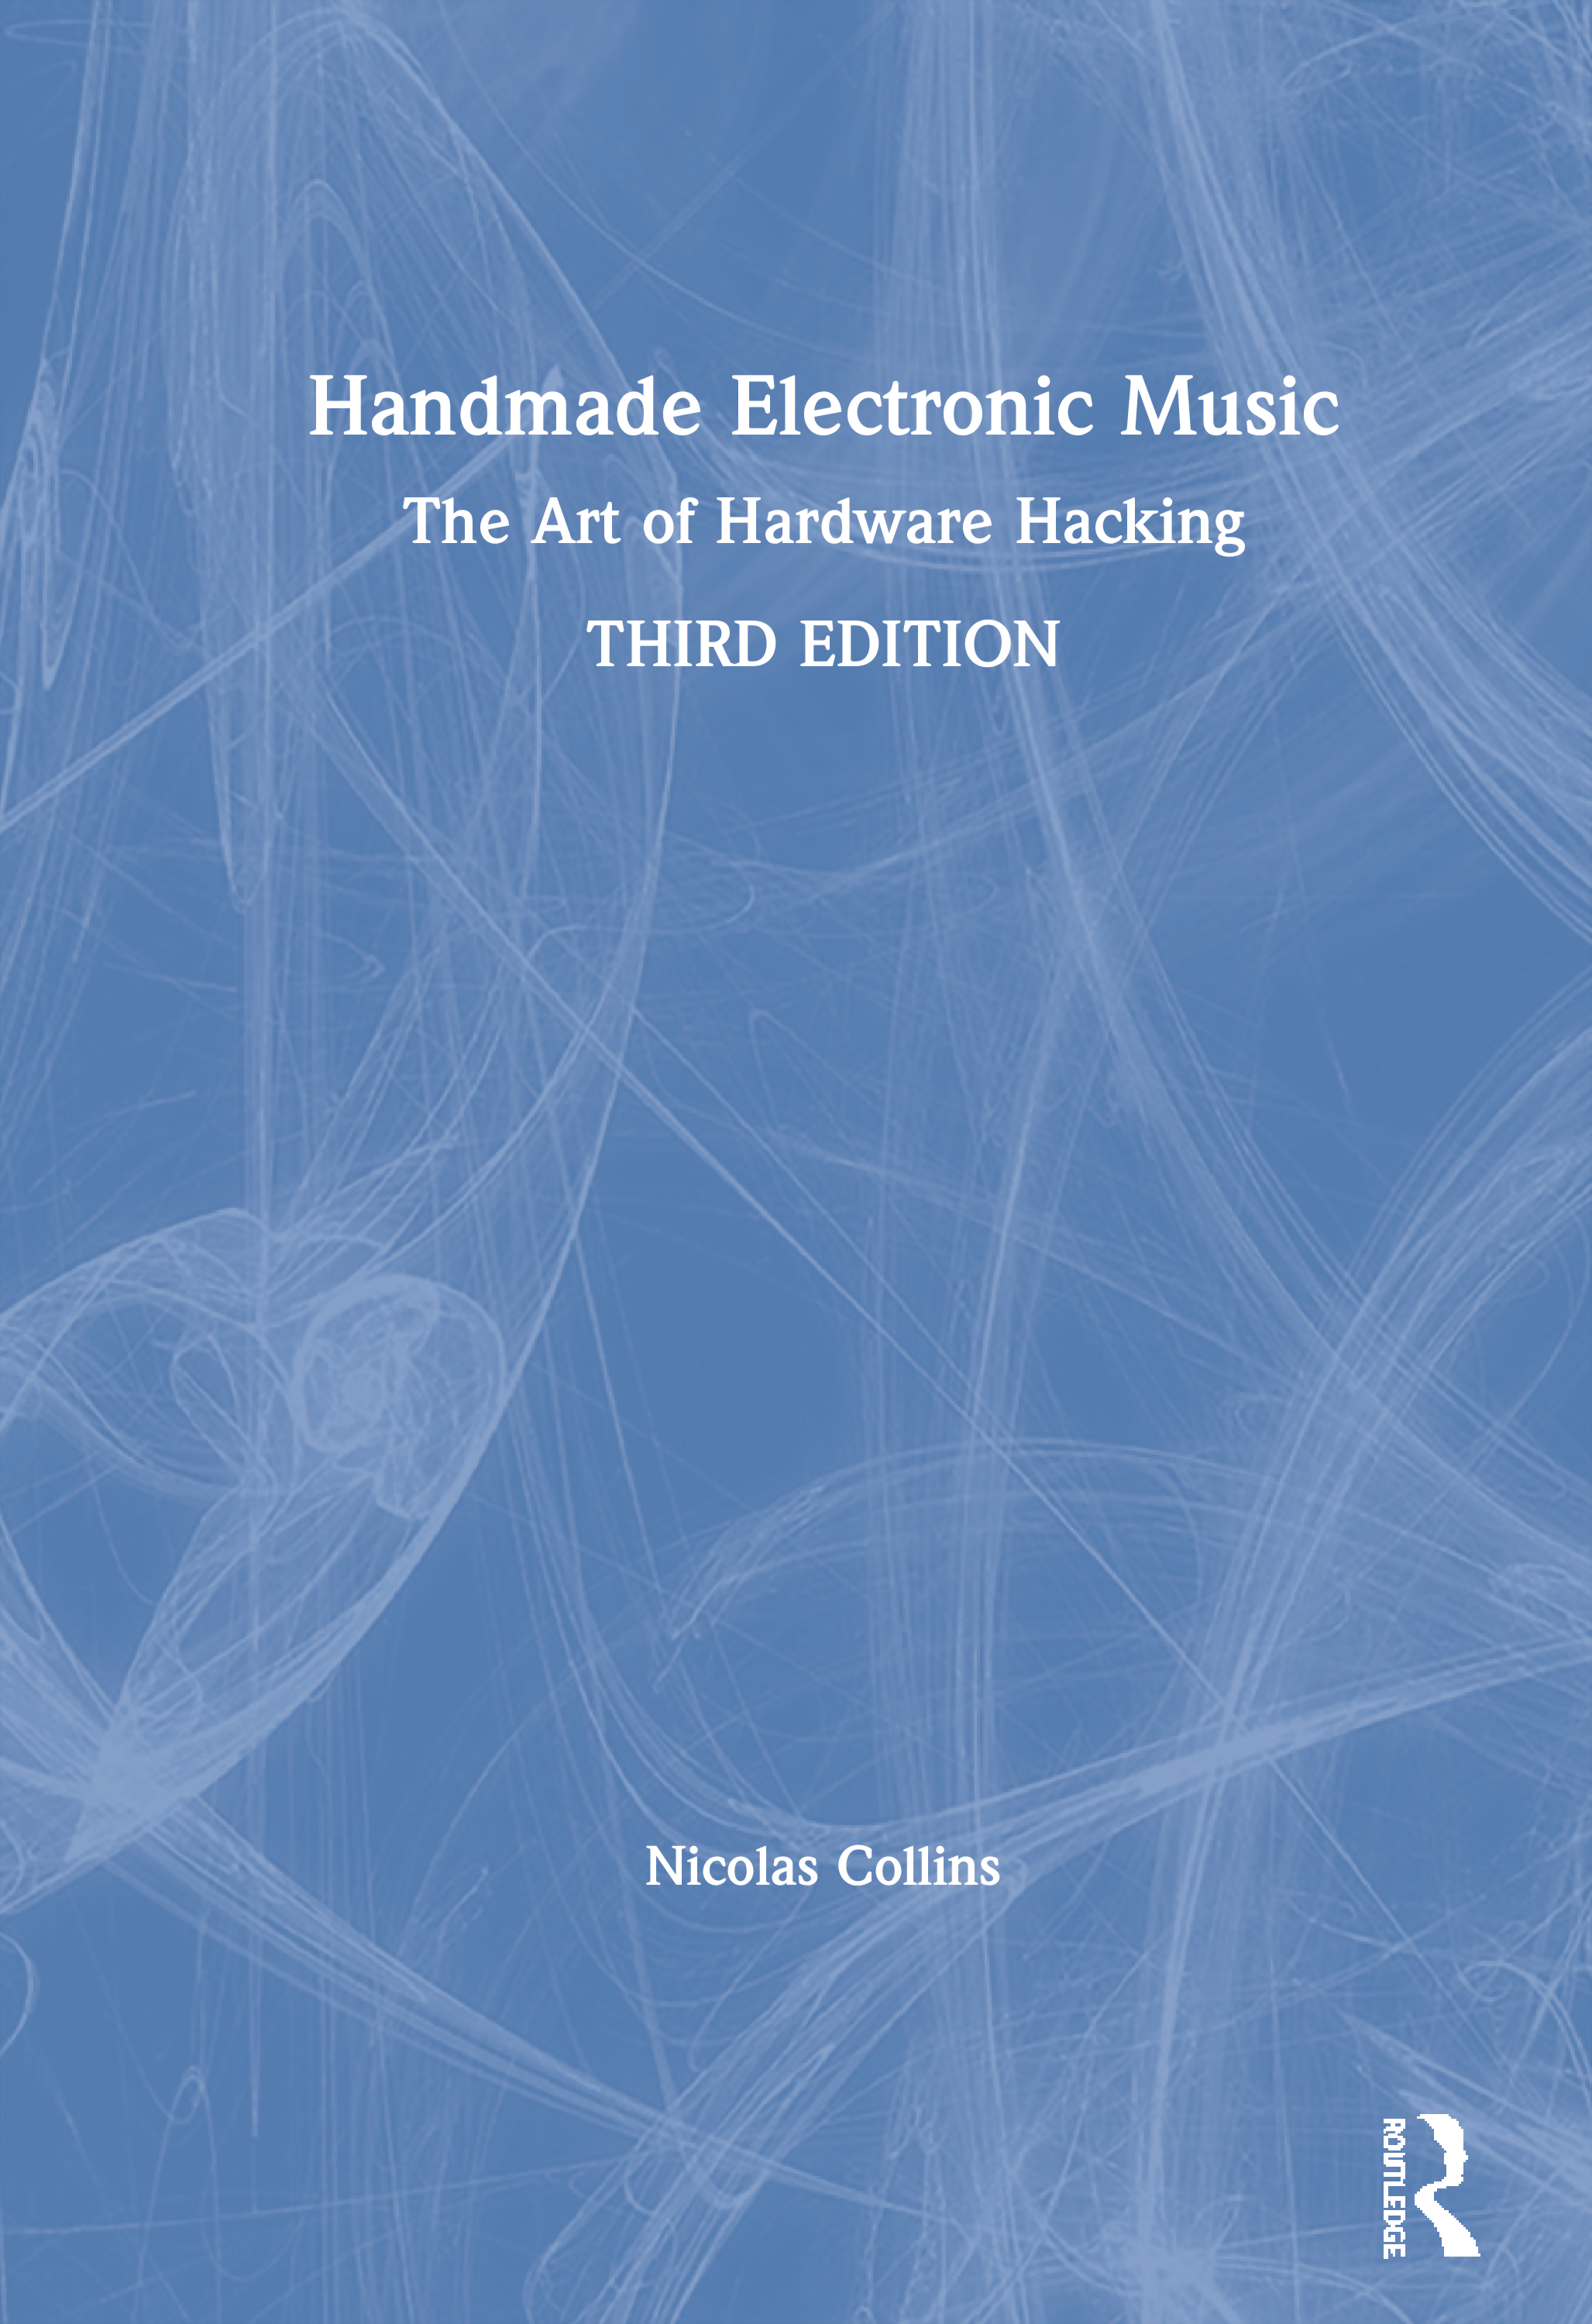 Handmade Electronic Music: The Art of Hardware Hacking book cover